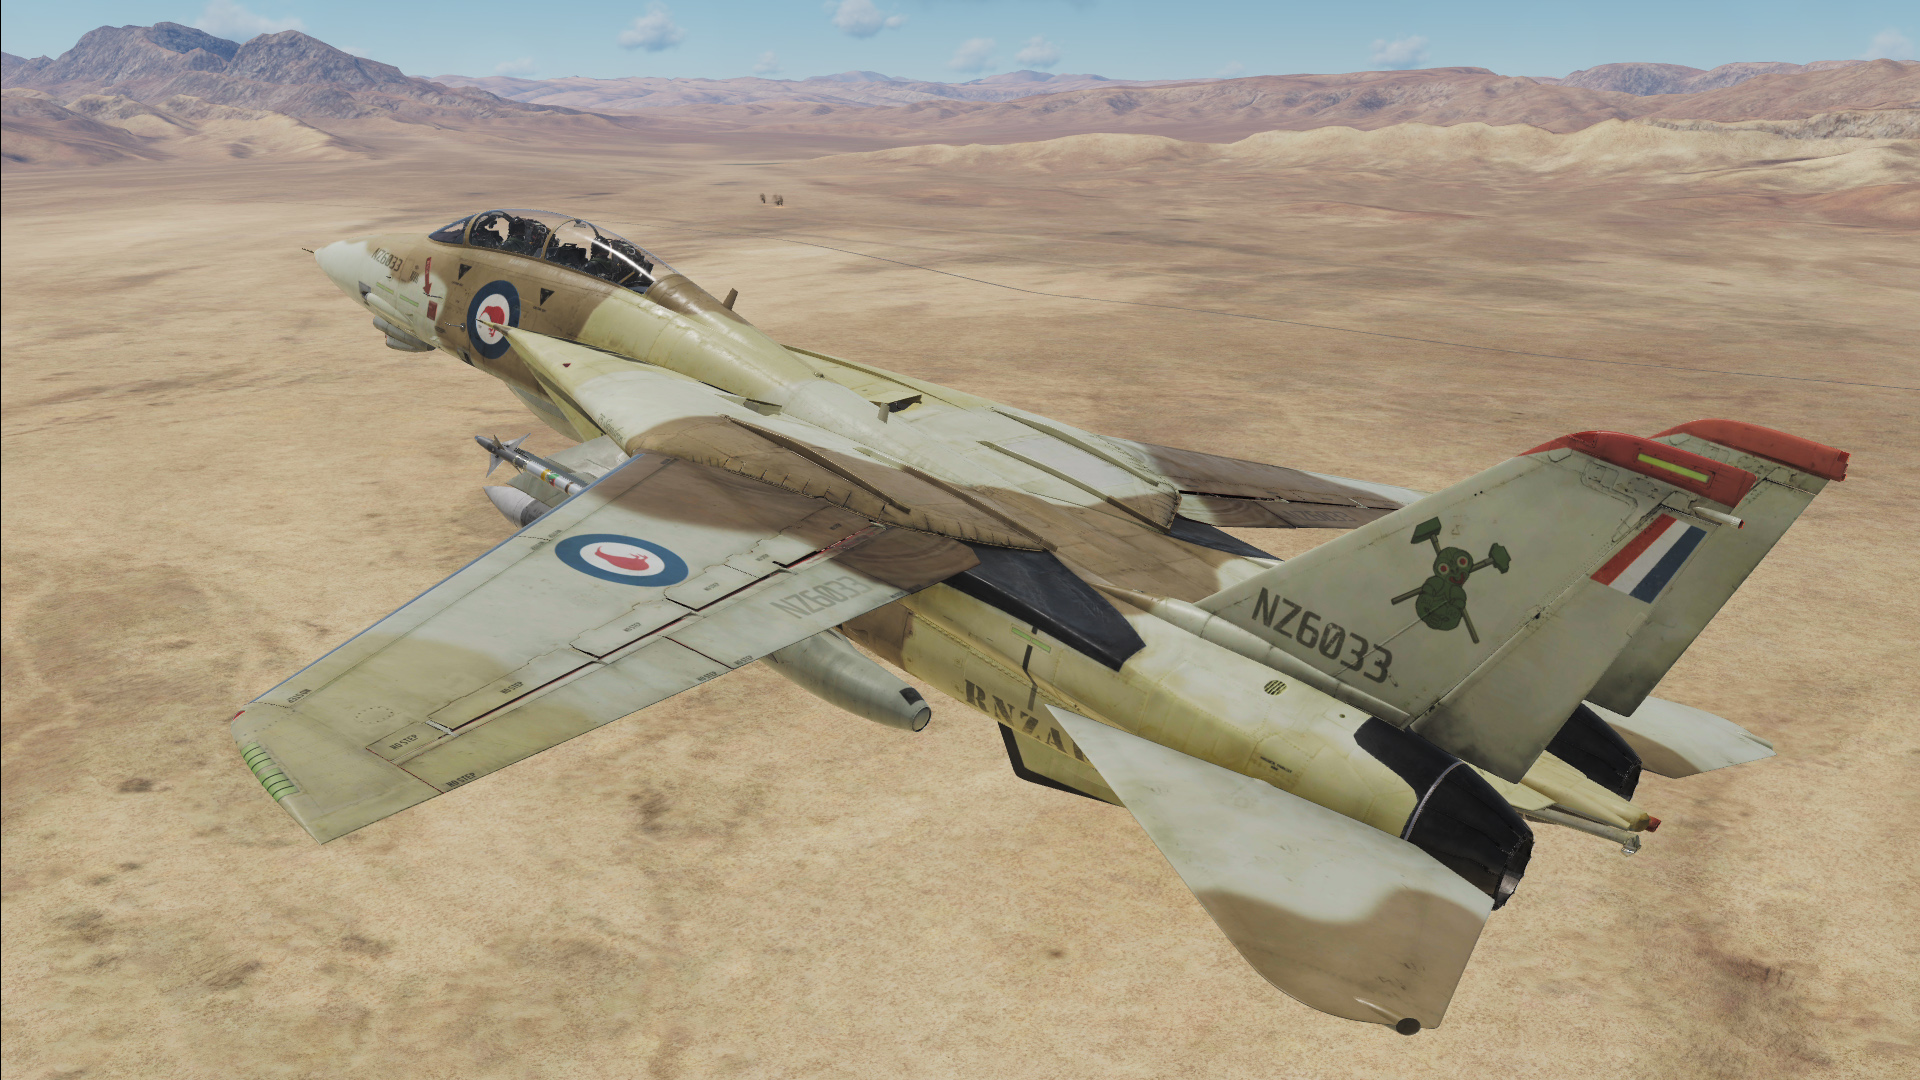 Fictional RNZAF (Royal New Zealand Airforce) F-14B - 75 Squadron - Desert Skin